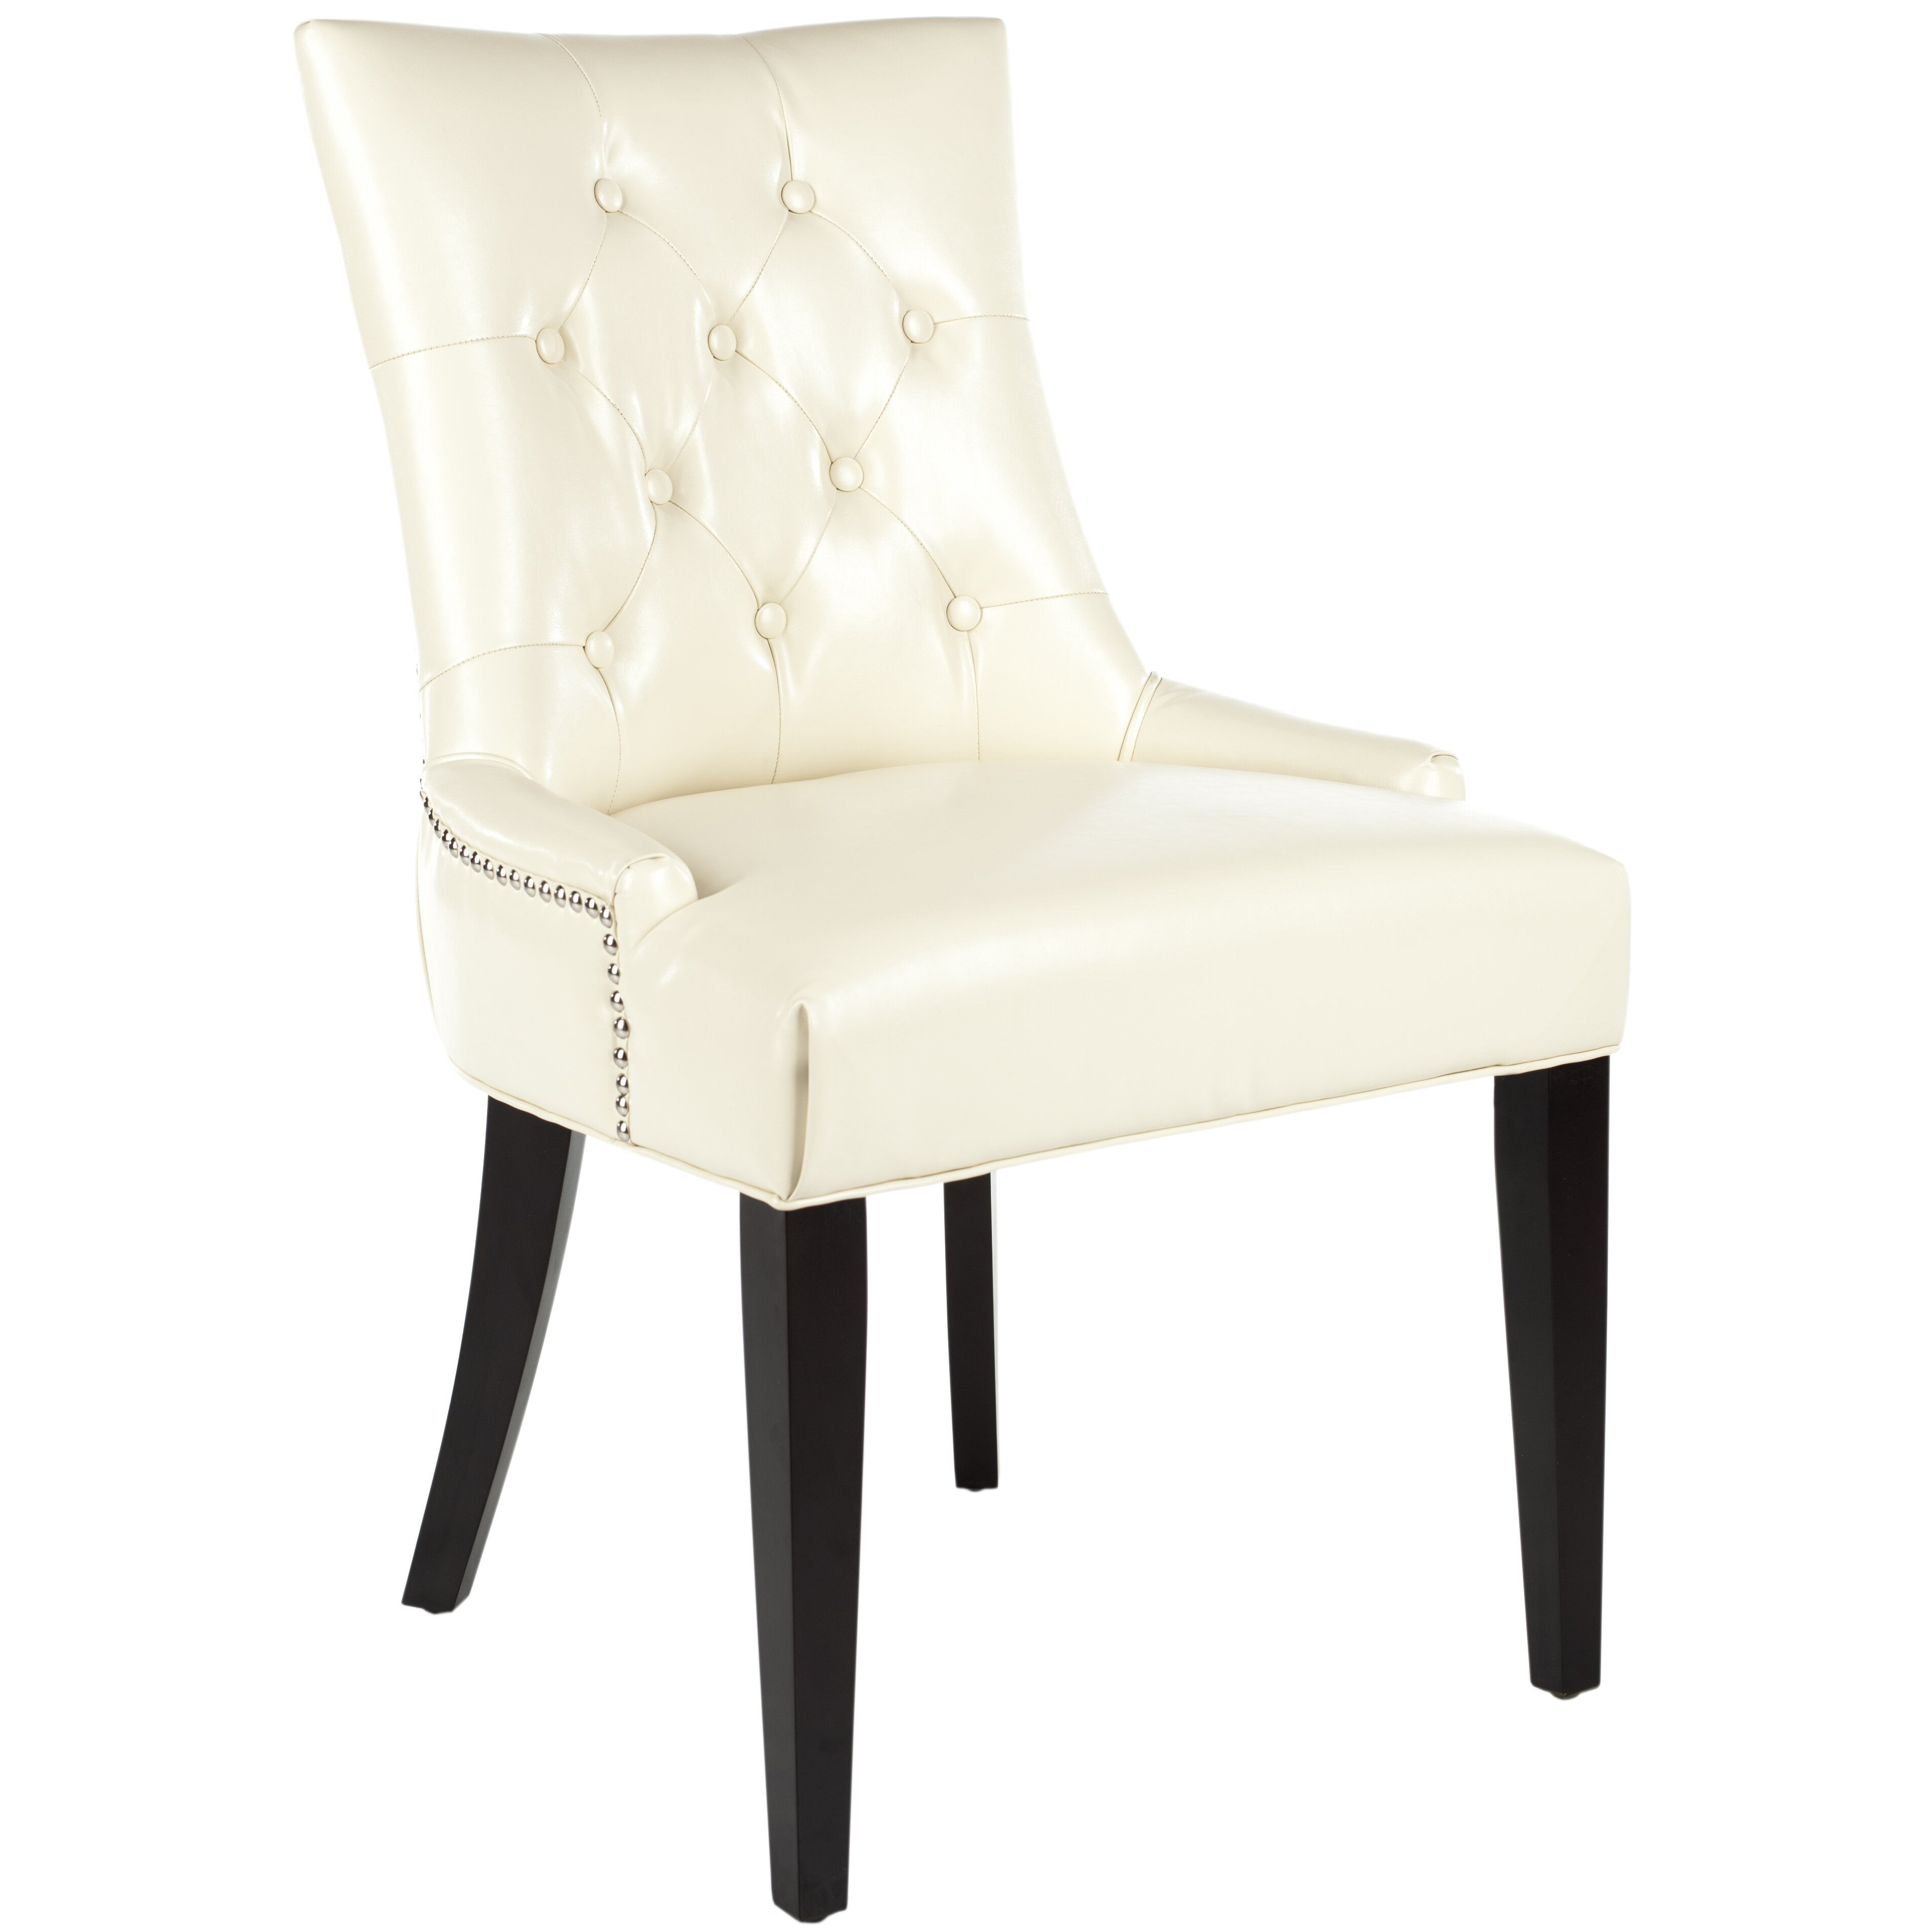 birch dining chairs safavieh solid birch upholstered dining chair 1660